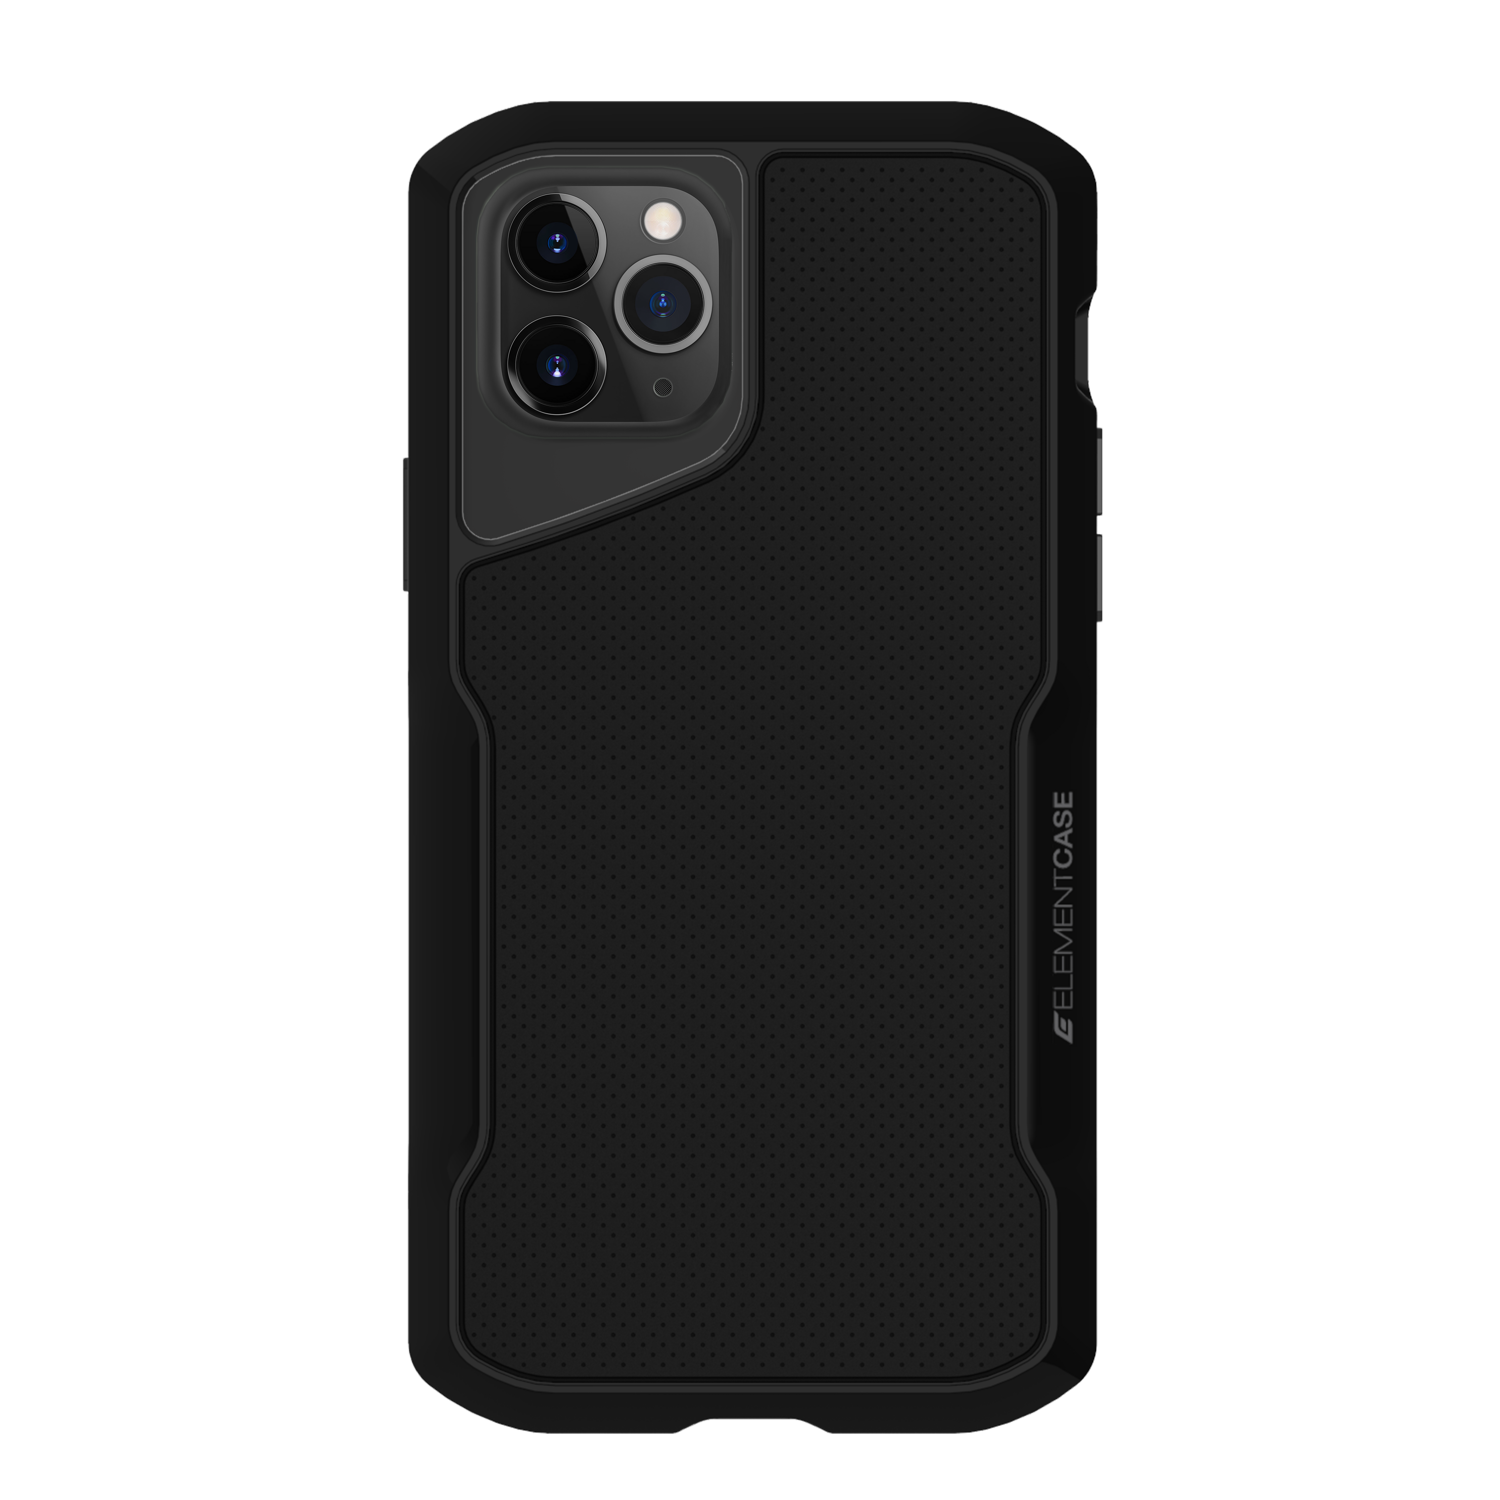 Element Case Shadow Series case for iPhone 11 Pro Max